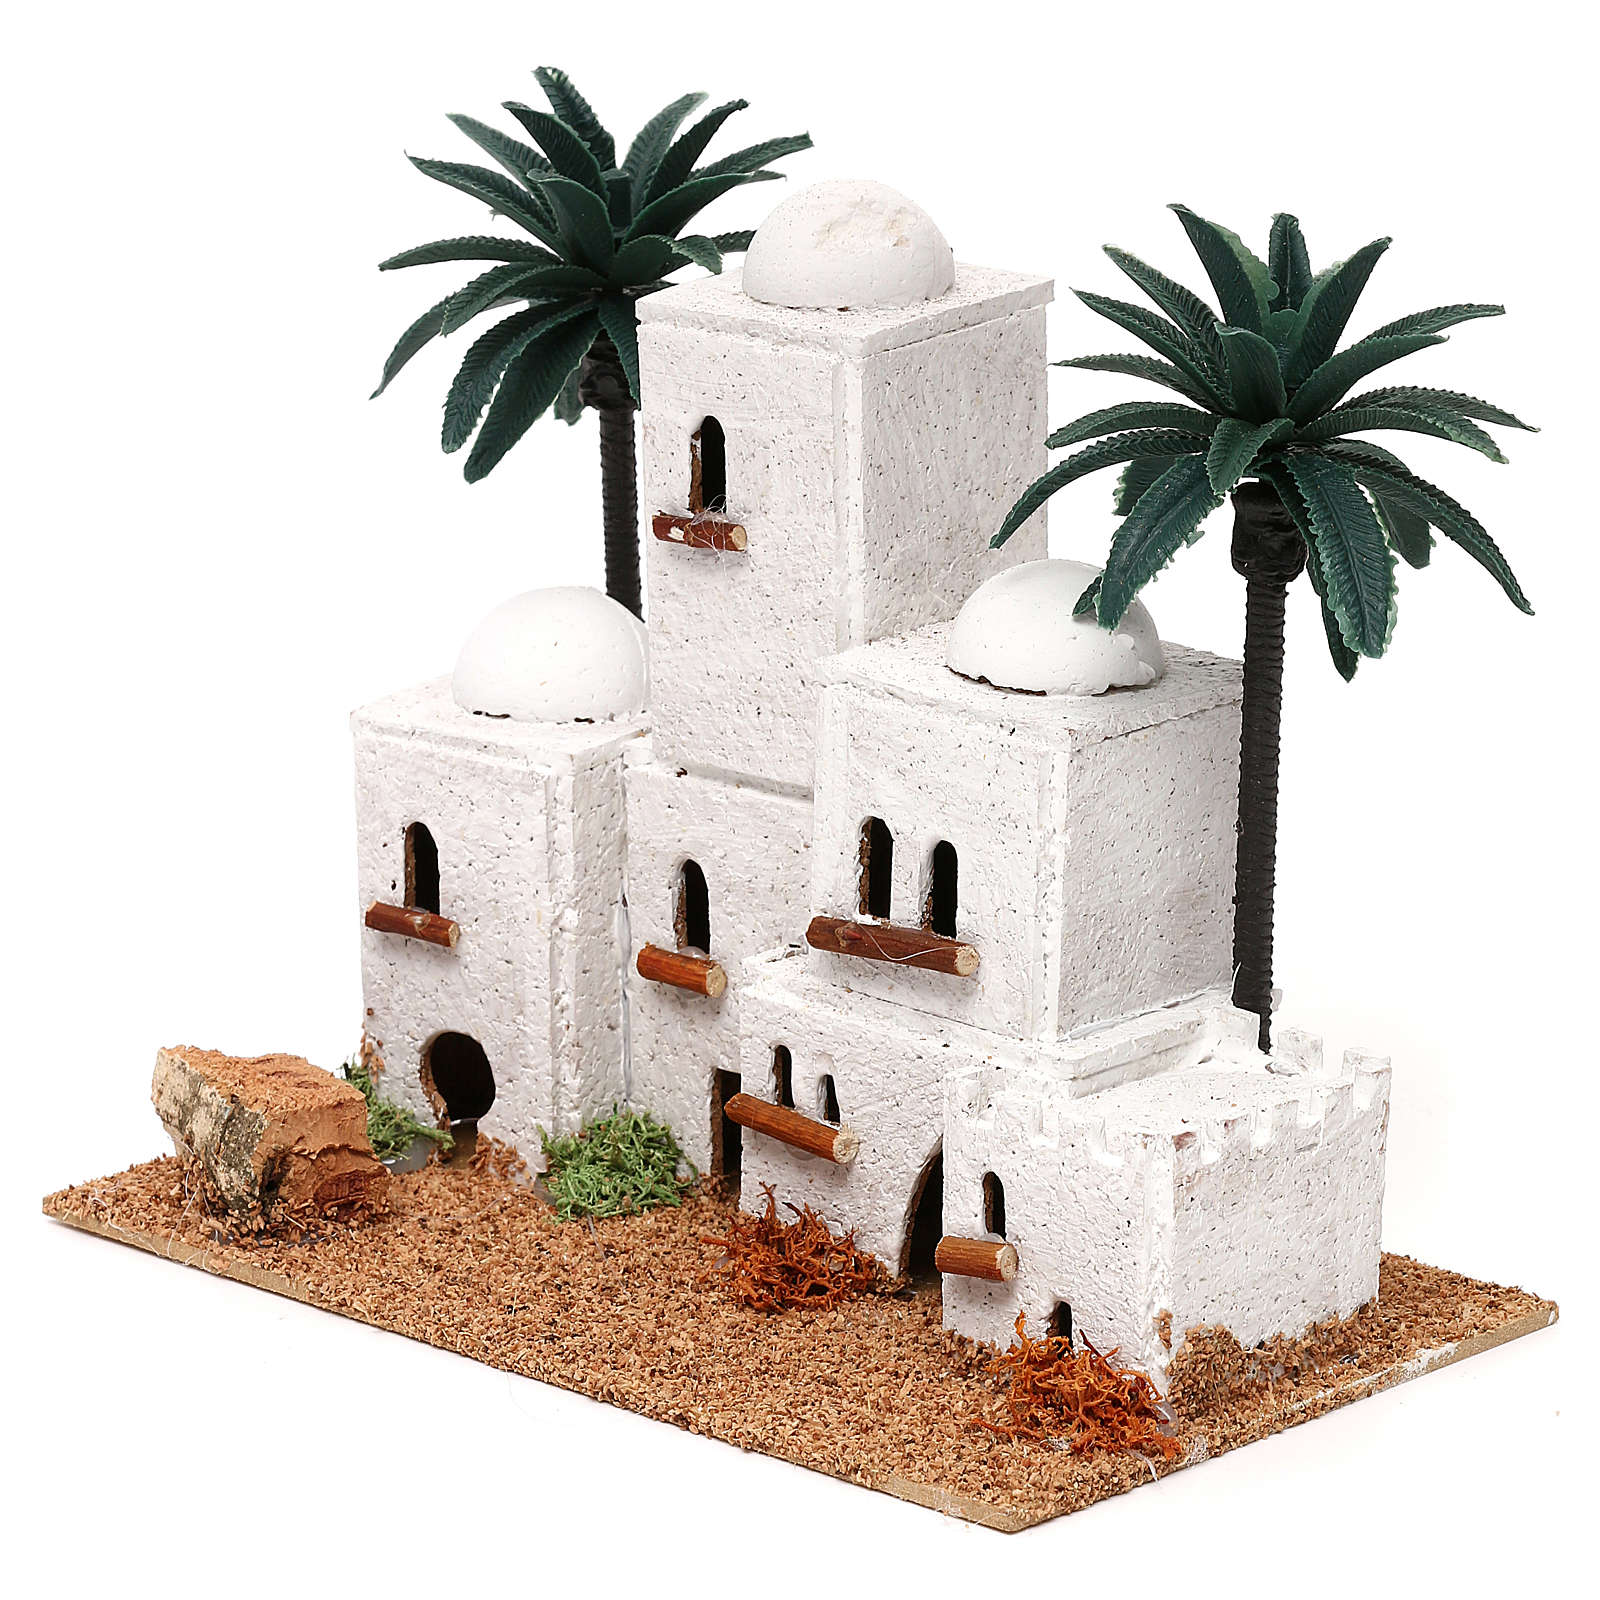 Arab-style village with palm trees Nativity scene 4 cm 15x20x10 cm 4